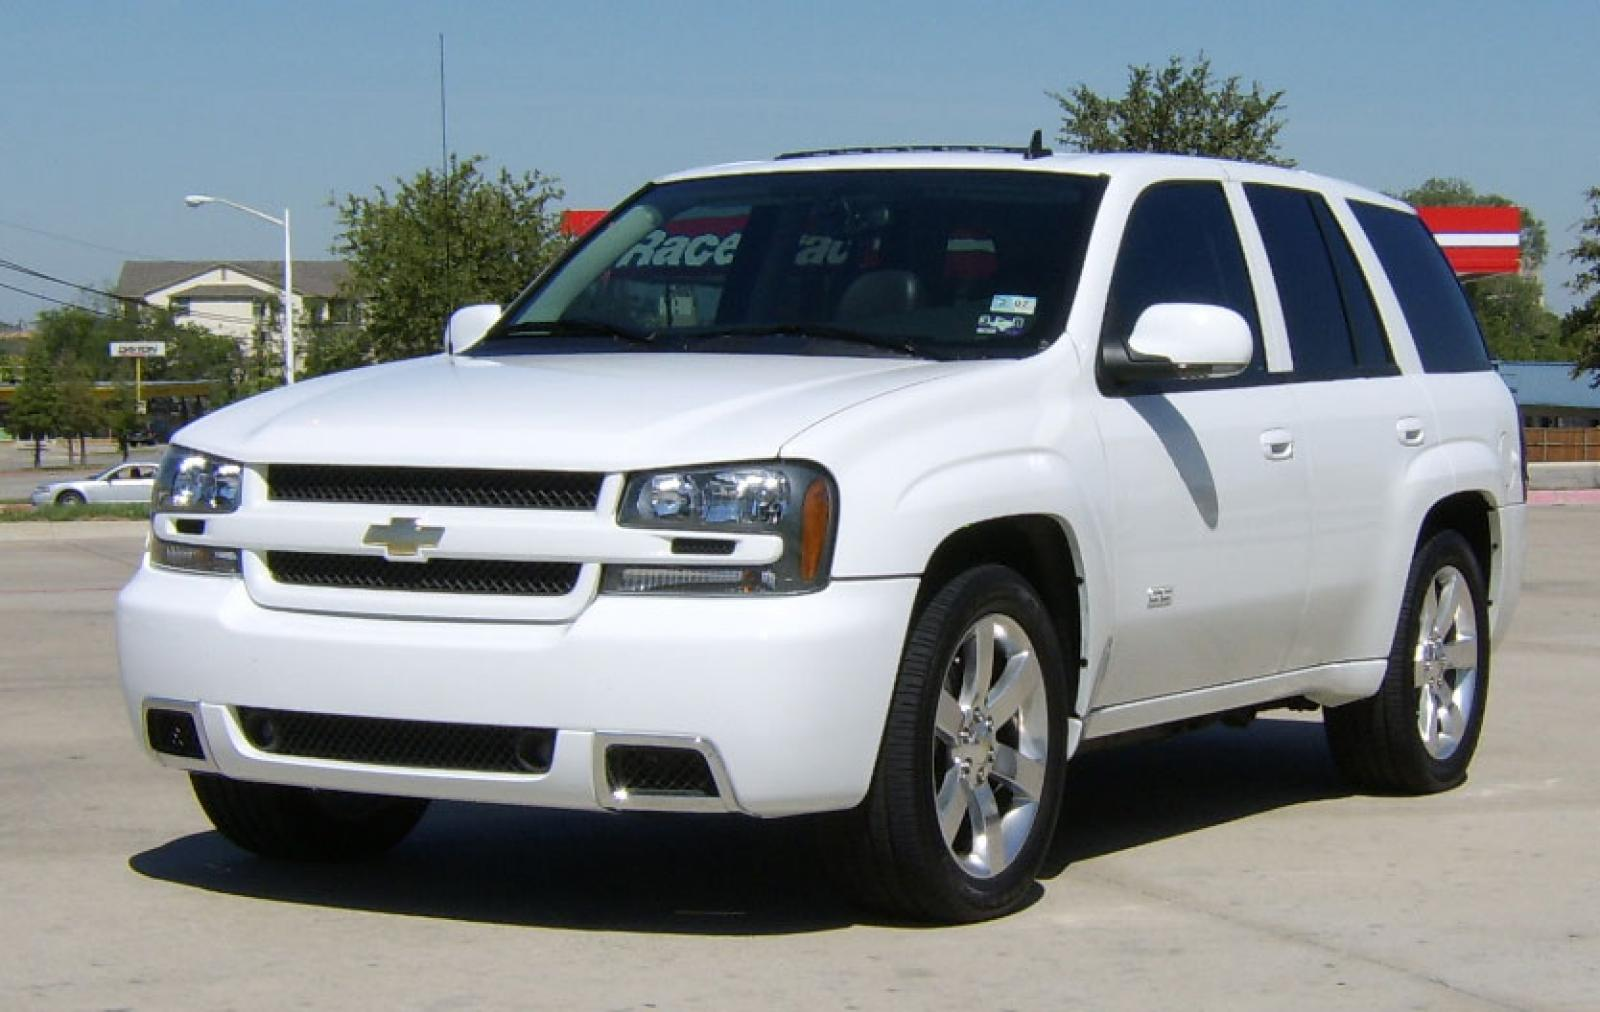 2005 Chevrolet Trailblazer Ext Information And Photos Zombiedrive Image 2003 Chevy Power Steering Diagram Download 800 1024 1280 1600 Origin